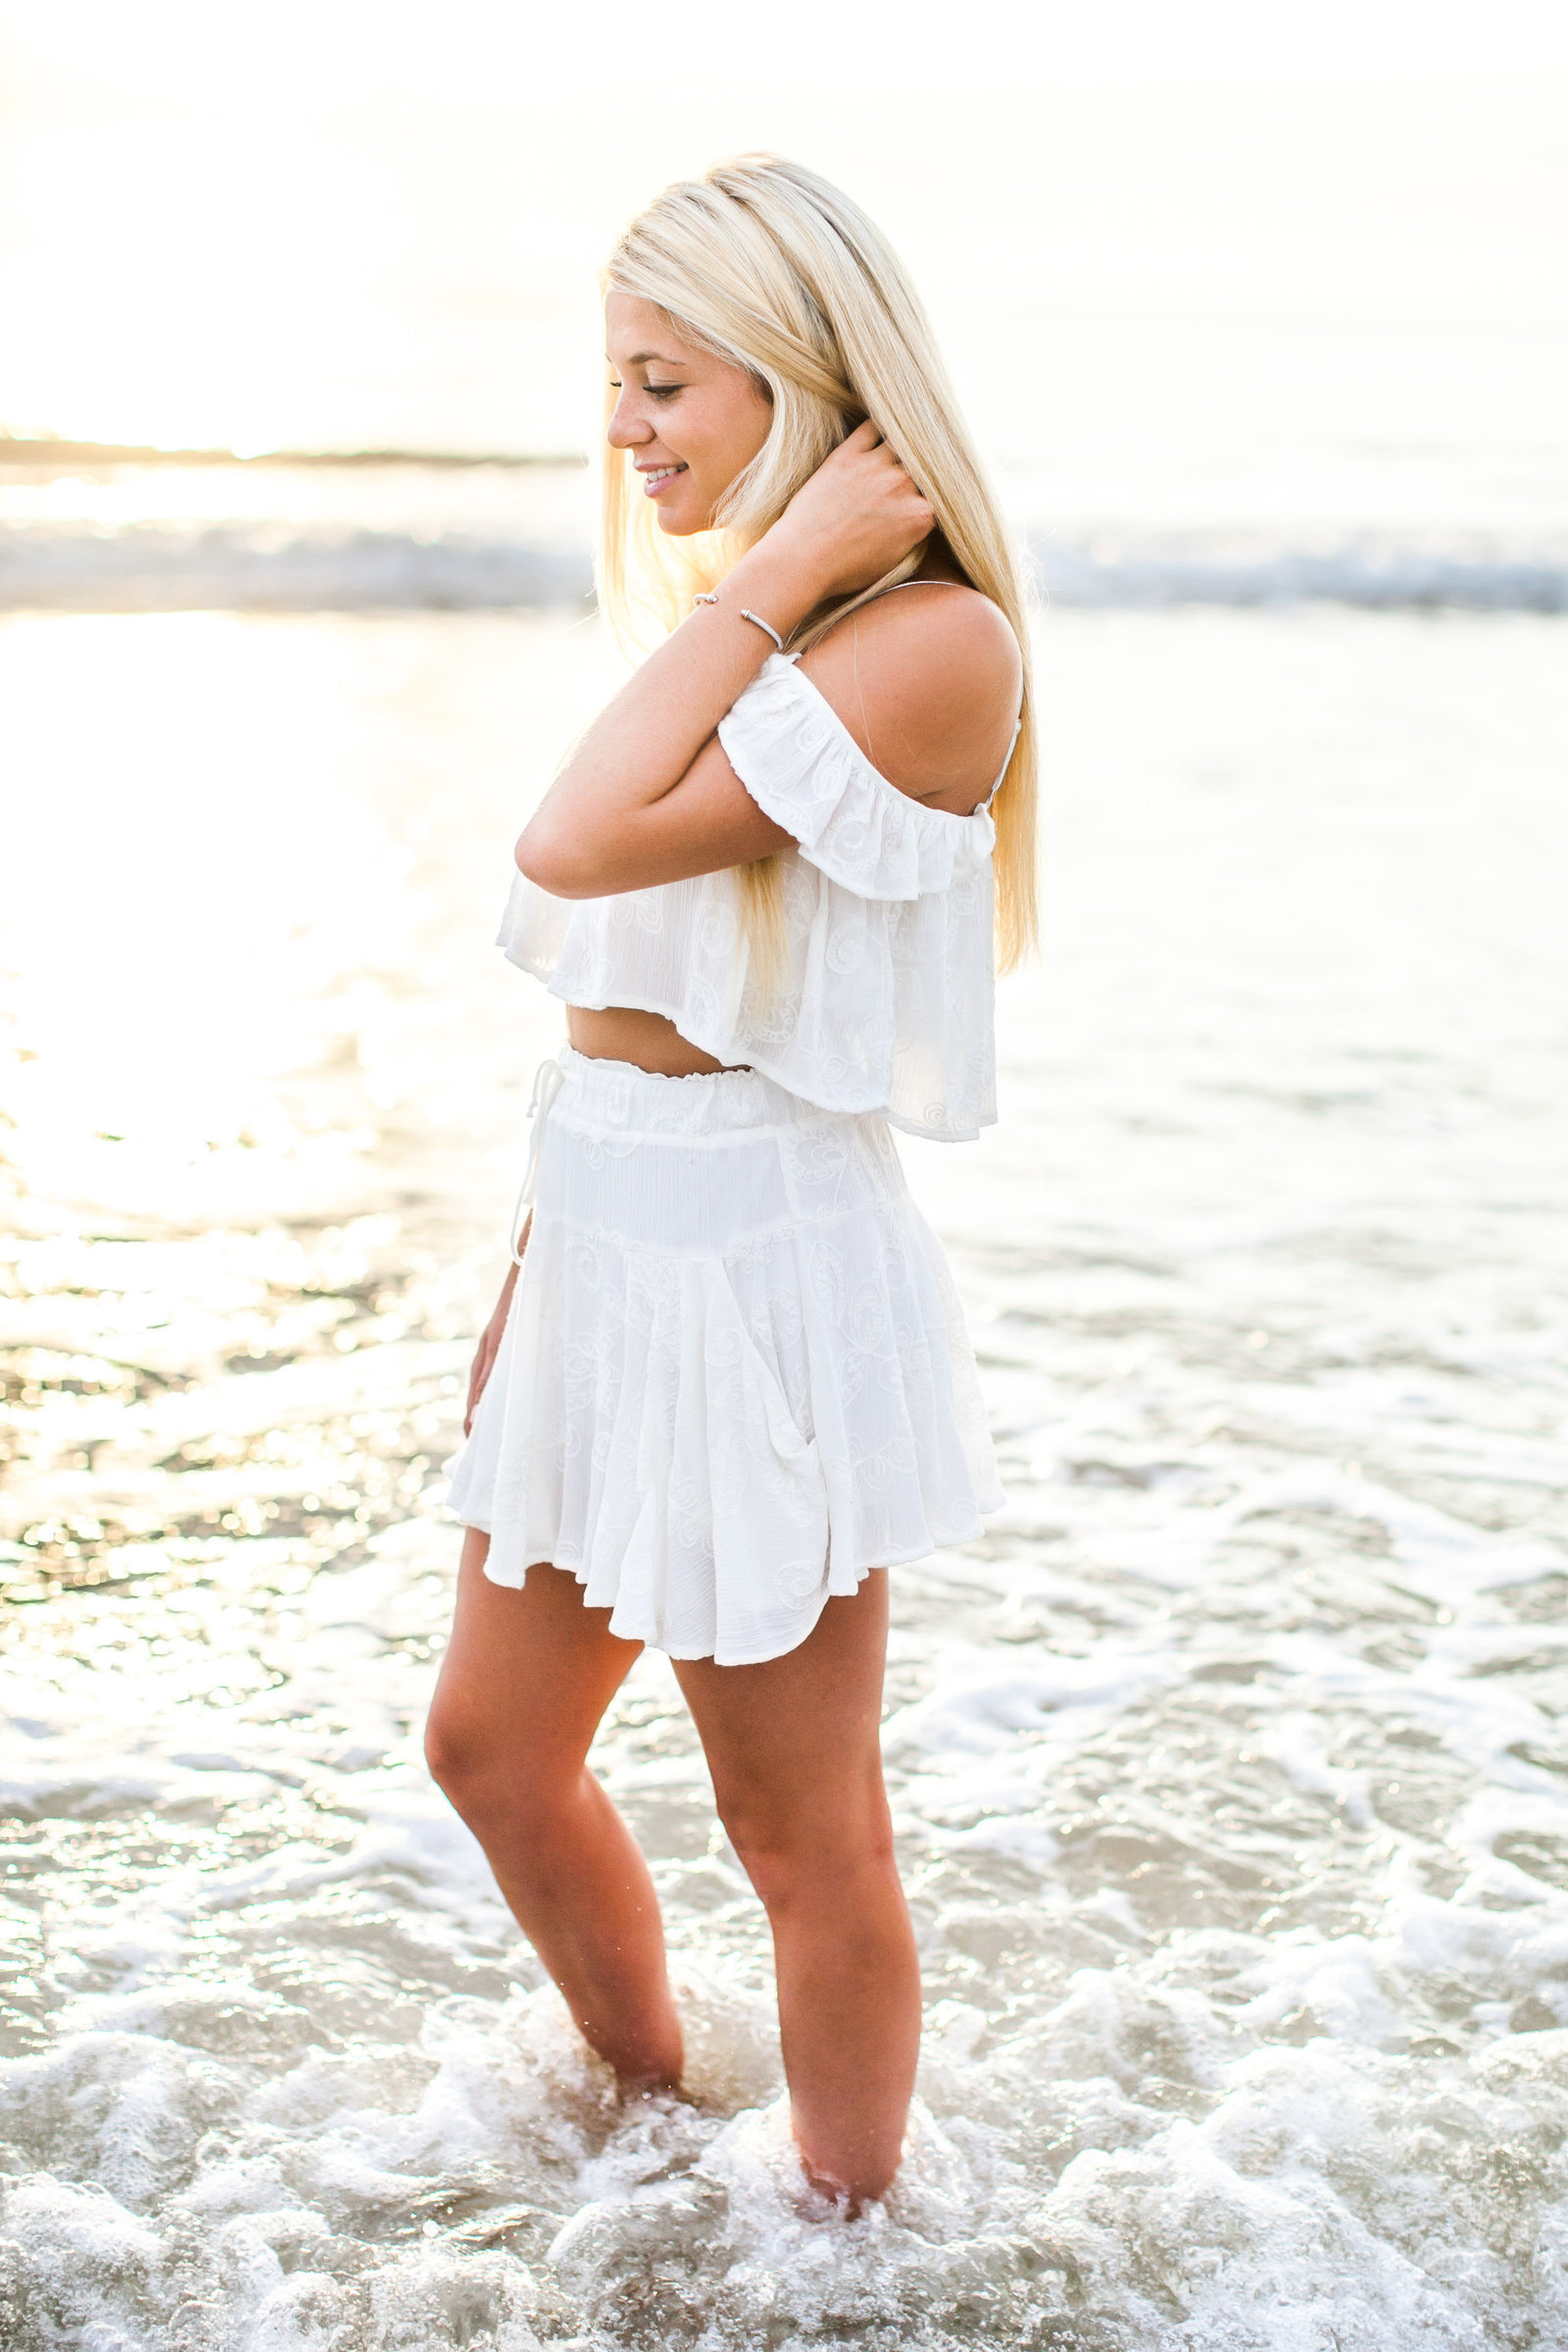 Sunrise pictures at the beach in all white outfit